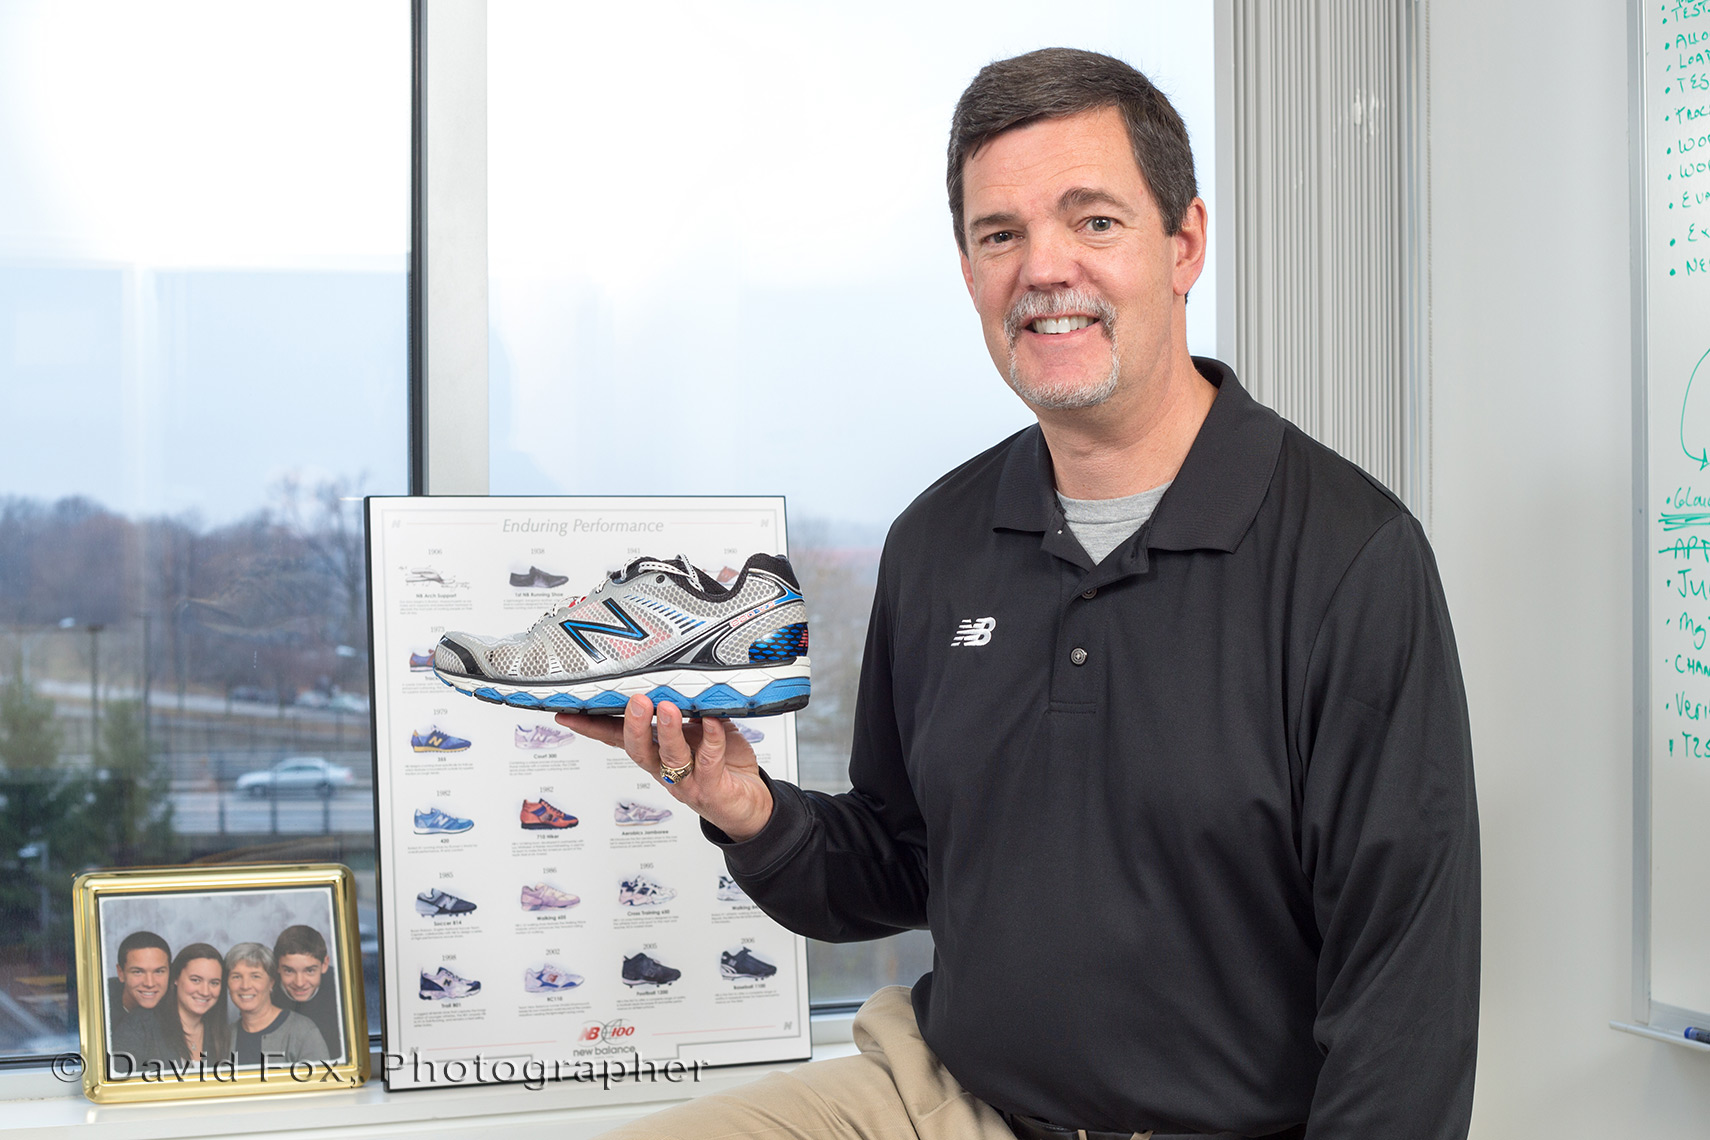 New Sneaker Displayed by Executive at Boston Corporate Office